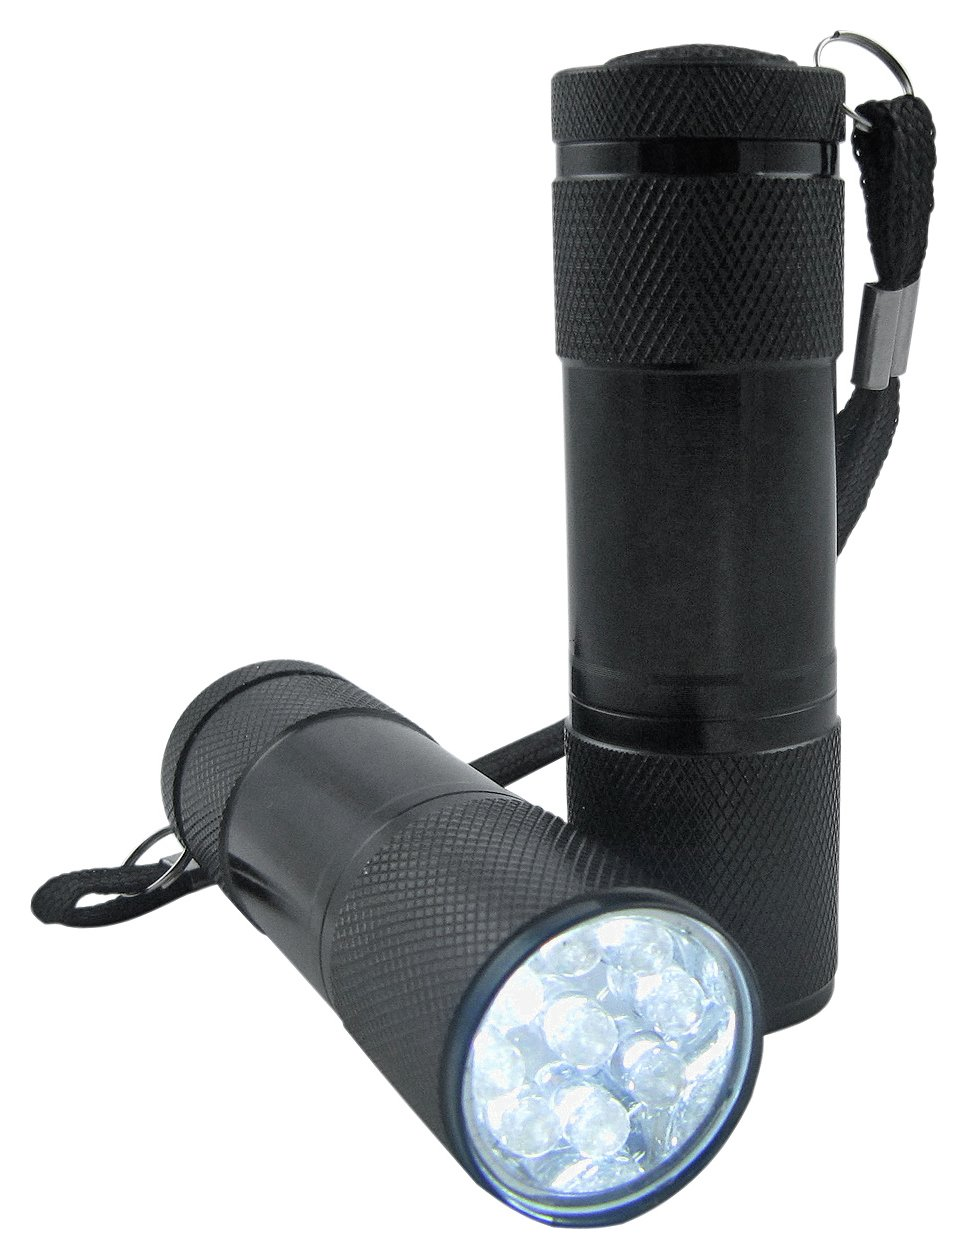 uni-com-global-twin-pack-torches